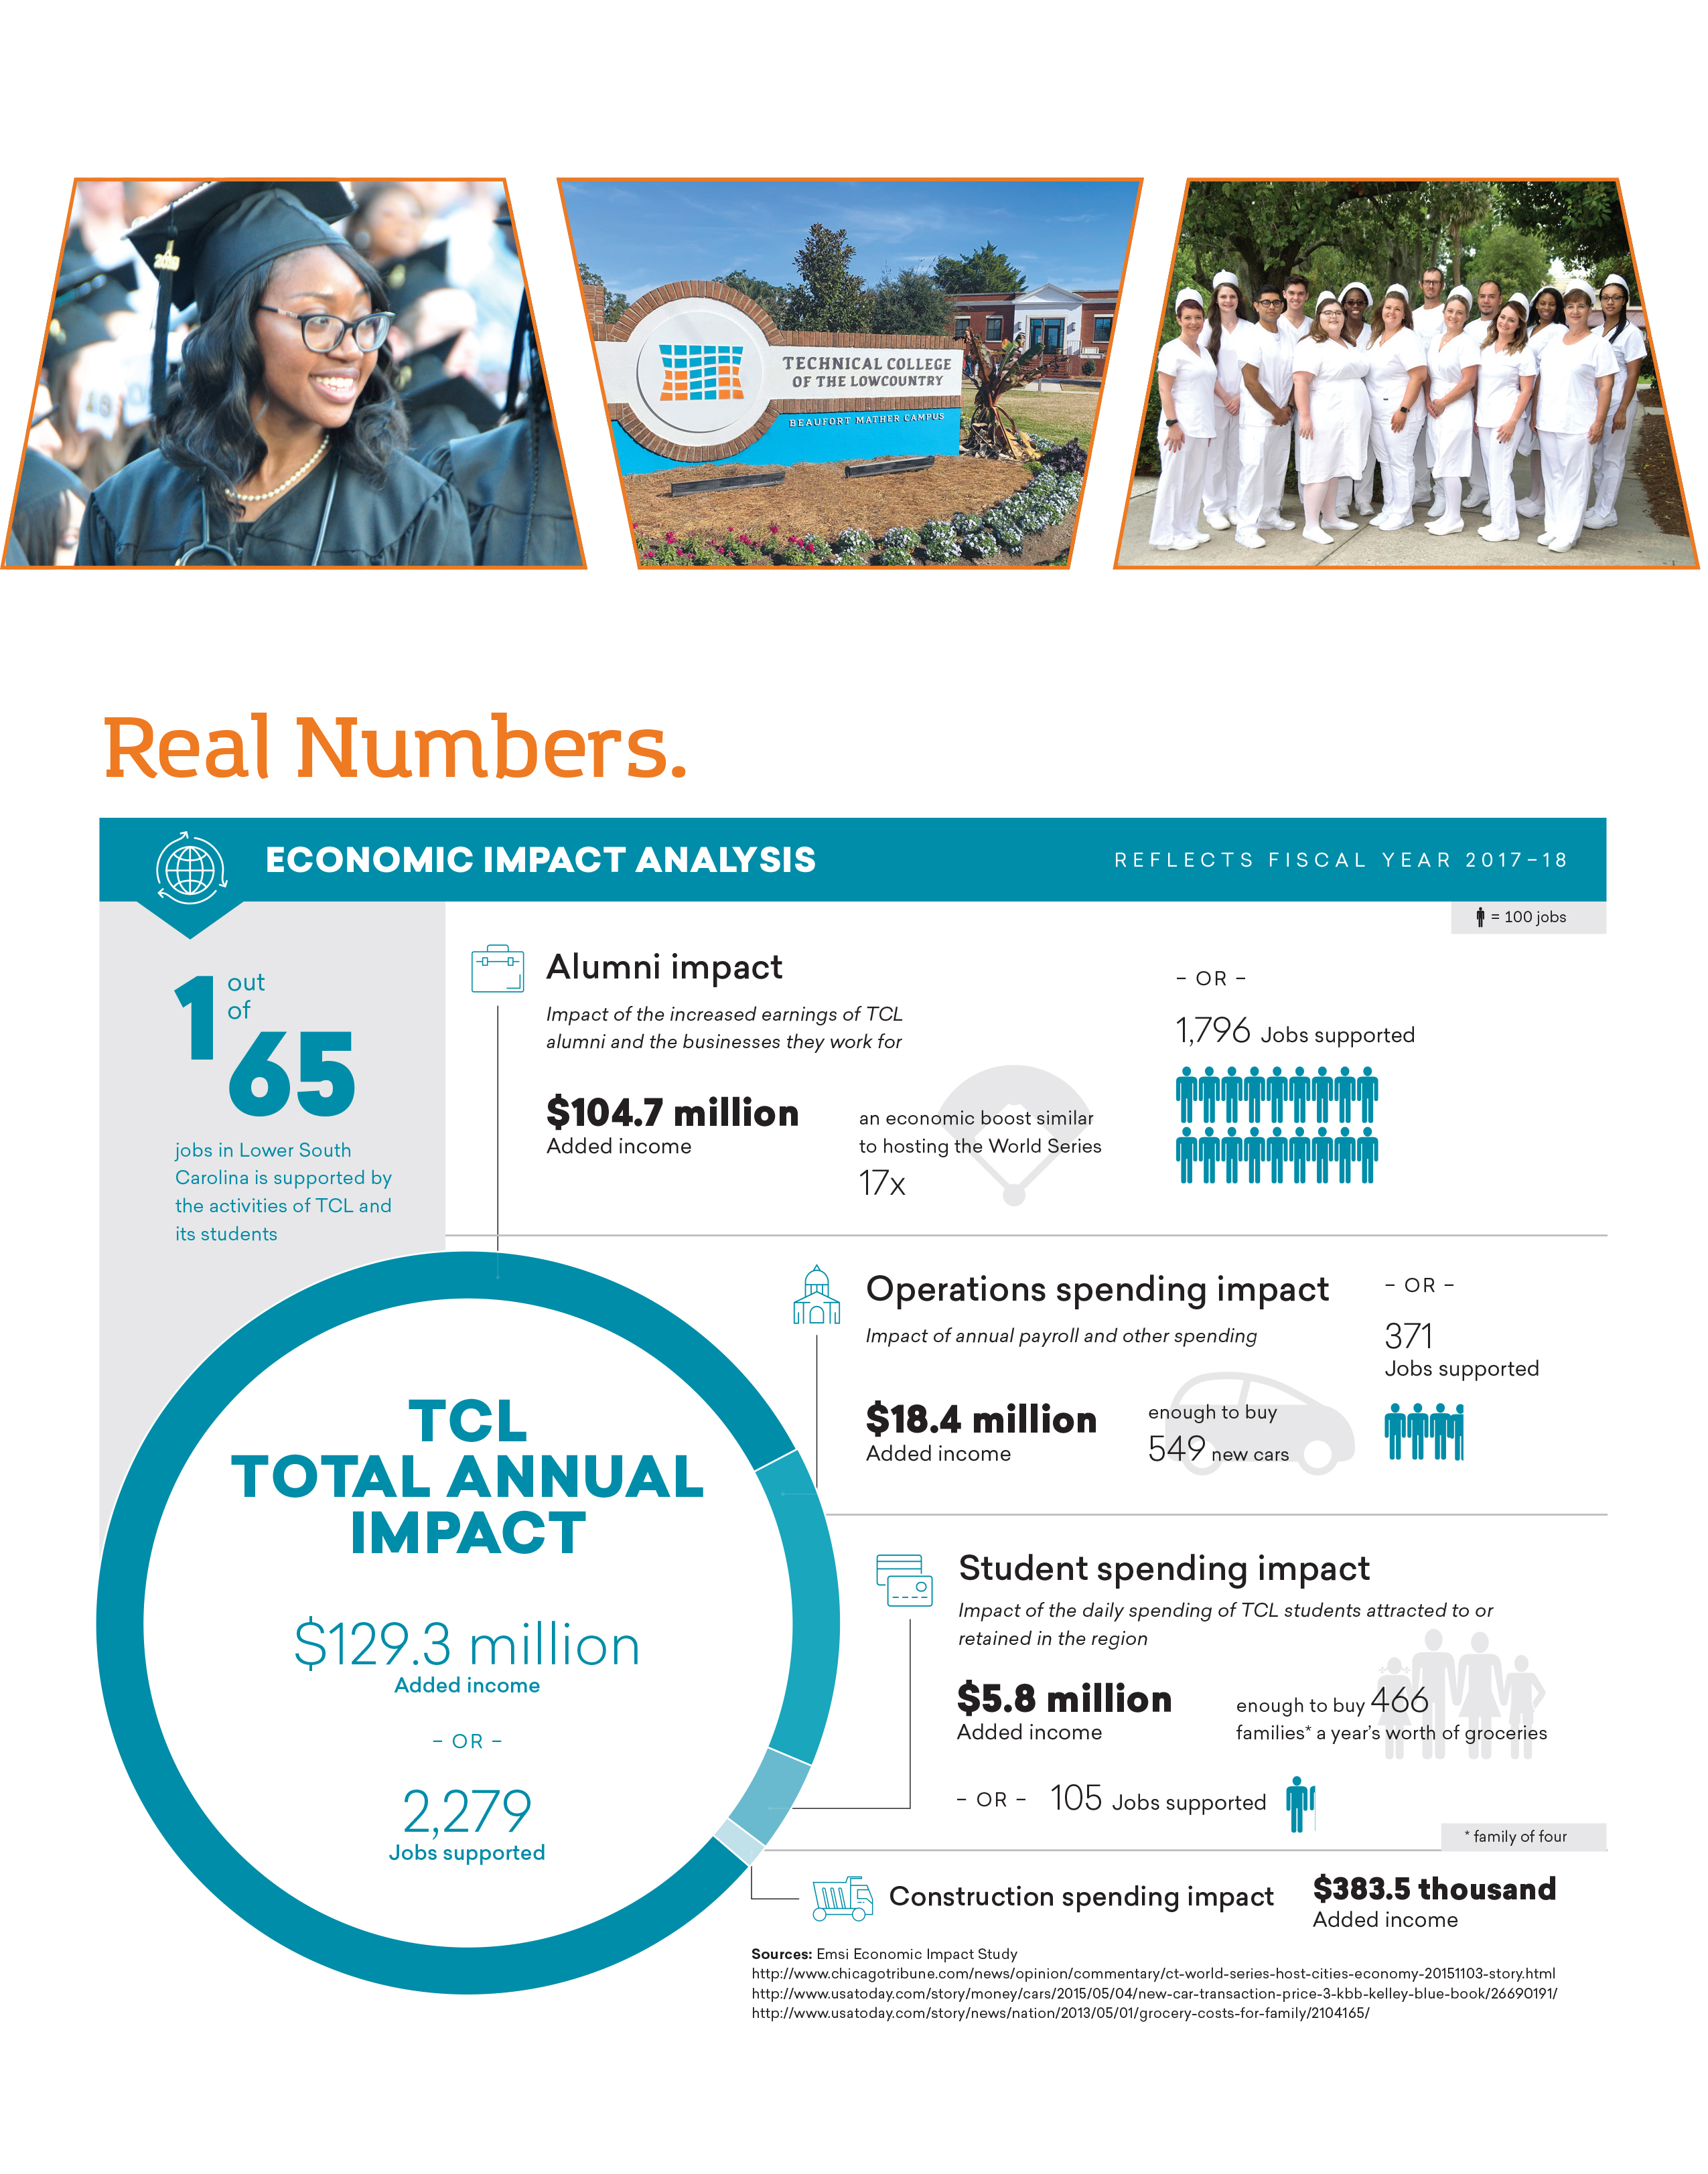 Real Numbers: (reflects fiscal year 2017-2018). One out of 65 jobs in Lower South Carolina is supported by the activities of TCL and its students. Alumni impact: Impact of the increased earnings of TCL alumni and the businesses they work for: $104.7 million Added income; an economic boost similar  to hosting the World Series 17 times; or, 1,796 Jobs supported. Operations spending impact: Impact of annual payroll and other spending: $18.4 million Added income; enough to buy  549 new cars, or 371 Jobs supported. Student spending impact: Impact of the daily spending of TCL students attracted to or retained in the region: $5.8 million Added income; enough to buy 466 families a year's worth of groceries, or 105 Jobs supported. Construction spending impact: $383.5 thousand added income. TCL Total Annual Impact: $129.3 million added income; or, 2,279 Jobs supported. Sources: Emsi Economic Impact Study https://www.chicagotribune.com/news/opinion/commentary/ct-world-series-host-cities-economy-20151103-story.html https://www.usatoday.com/story/money/cars/2015/05/04/new-car-transaction-price-3-kbb-kelley-blue-book/26690191/ https://www.usatoday.com/story/news/nation/2013/05/01/grocery-costs-for-family/2104165/